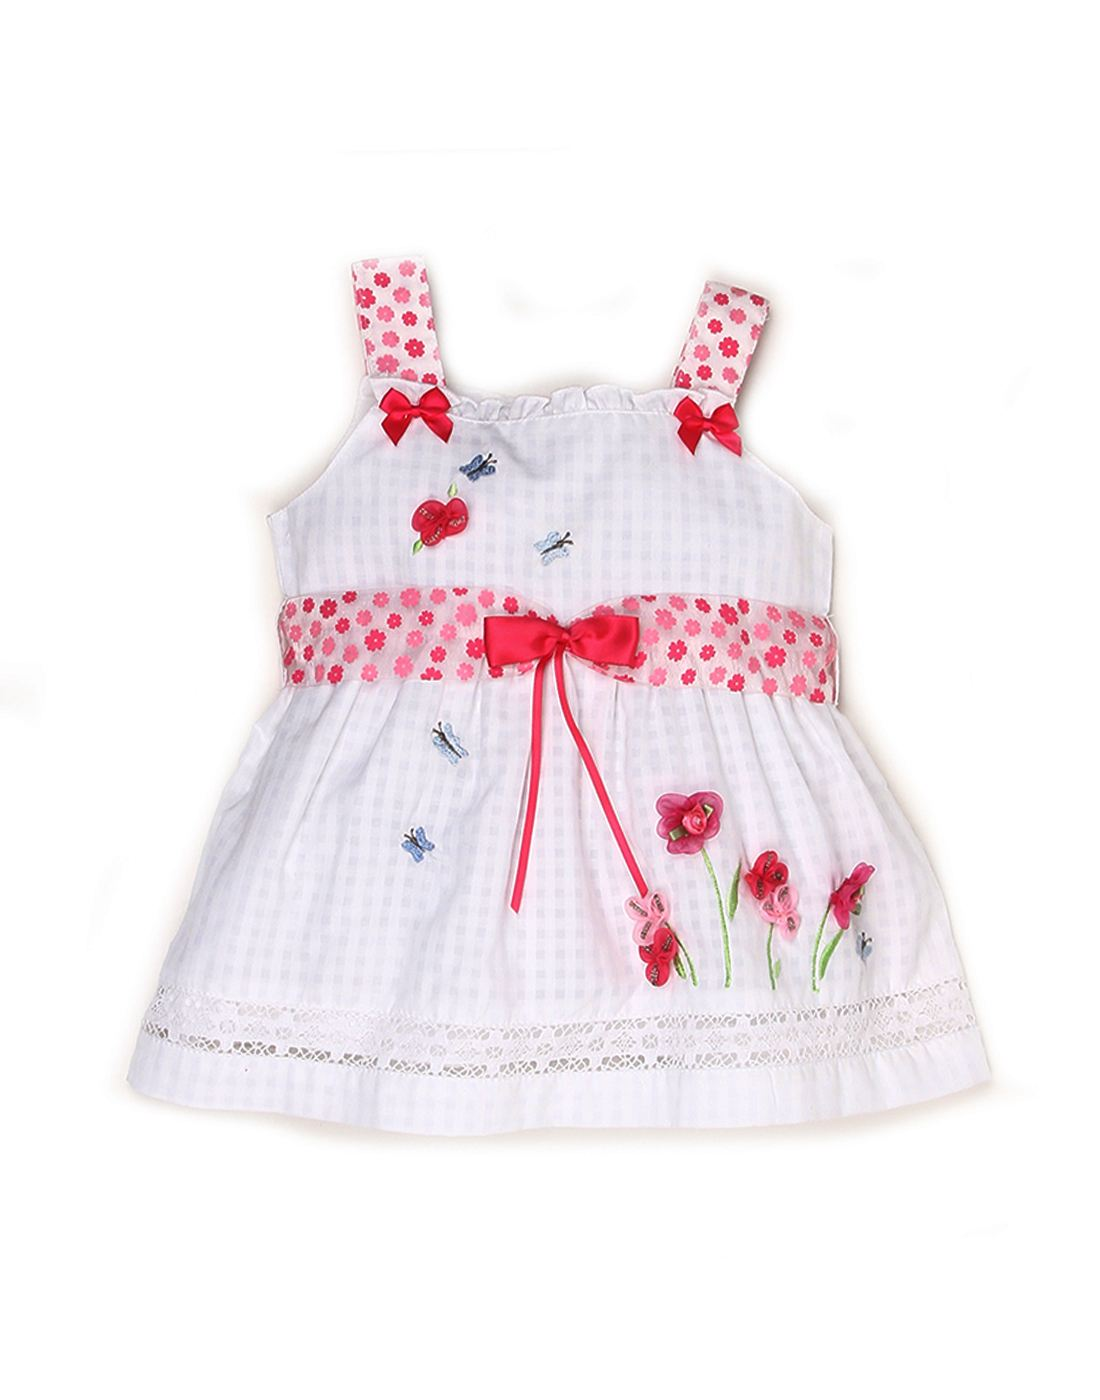 K.C.O 89 Baby Girls Casual Applique Sleeveless Frock